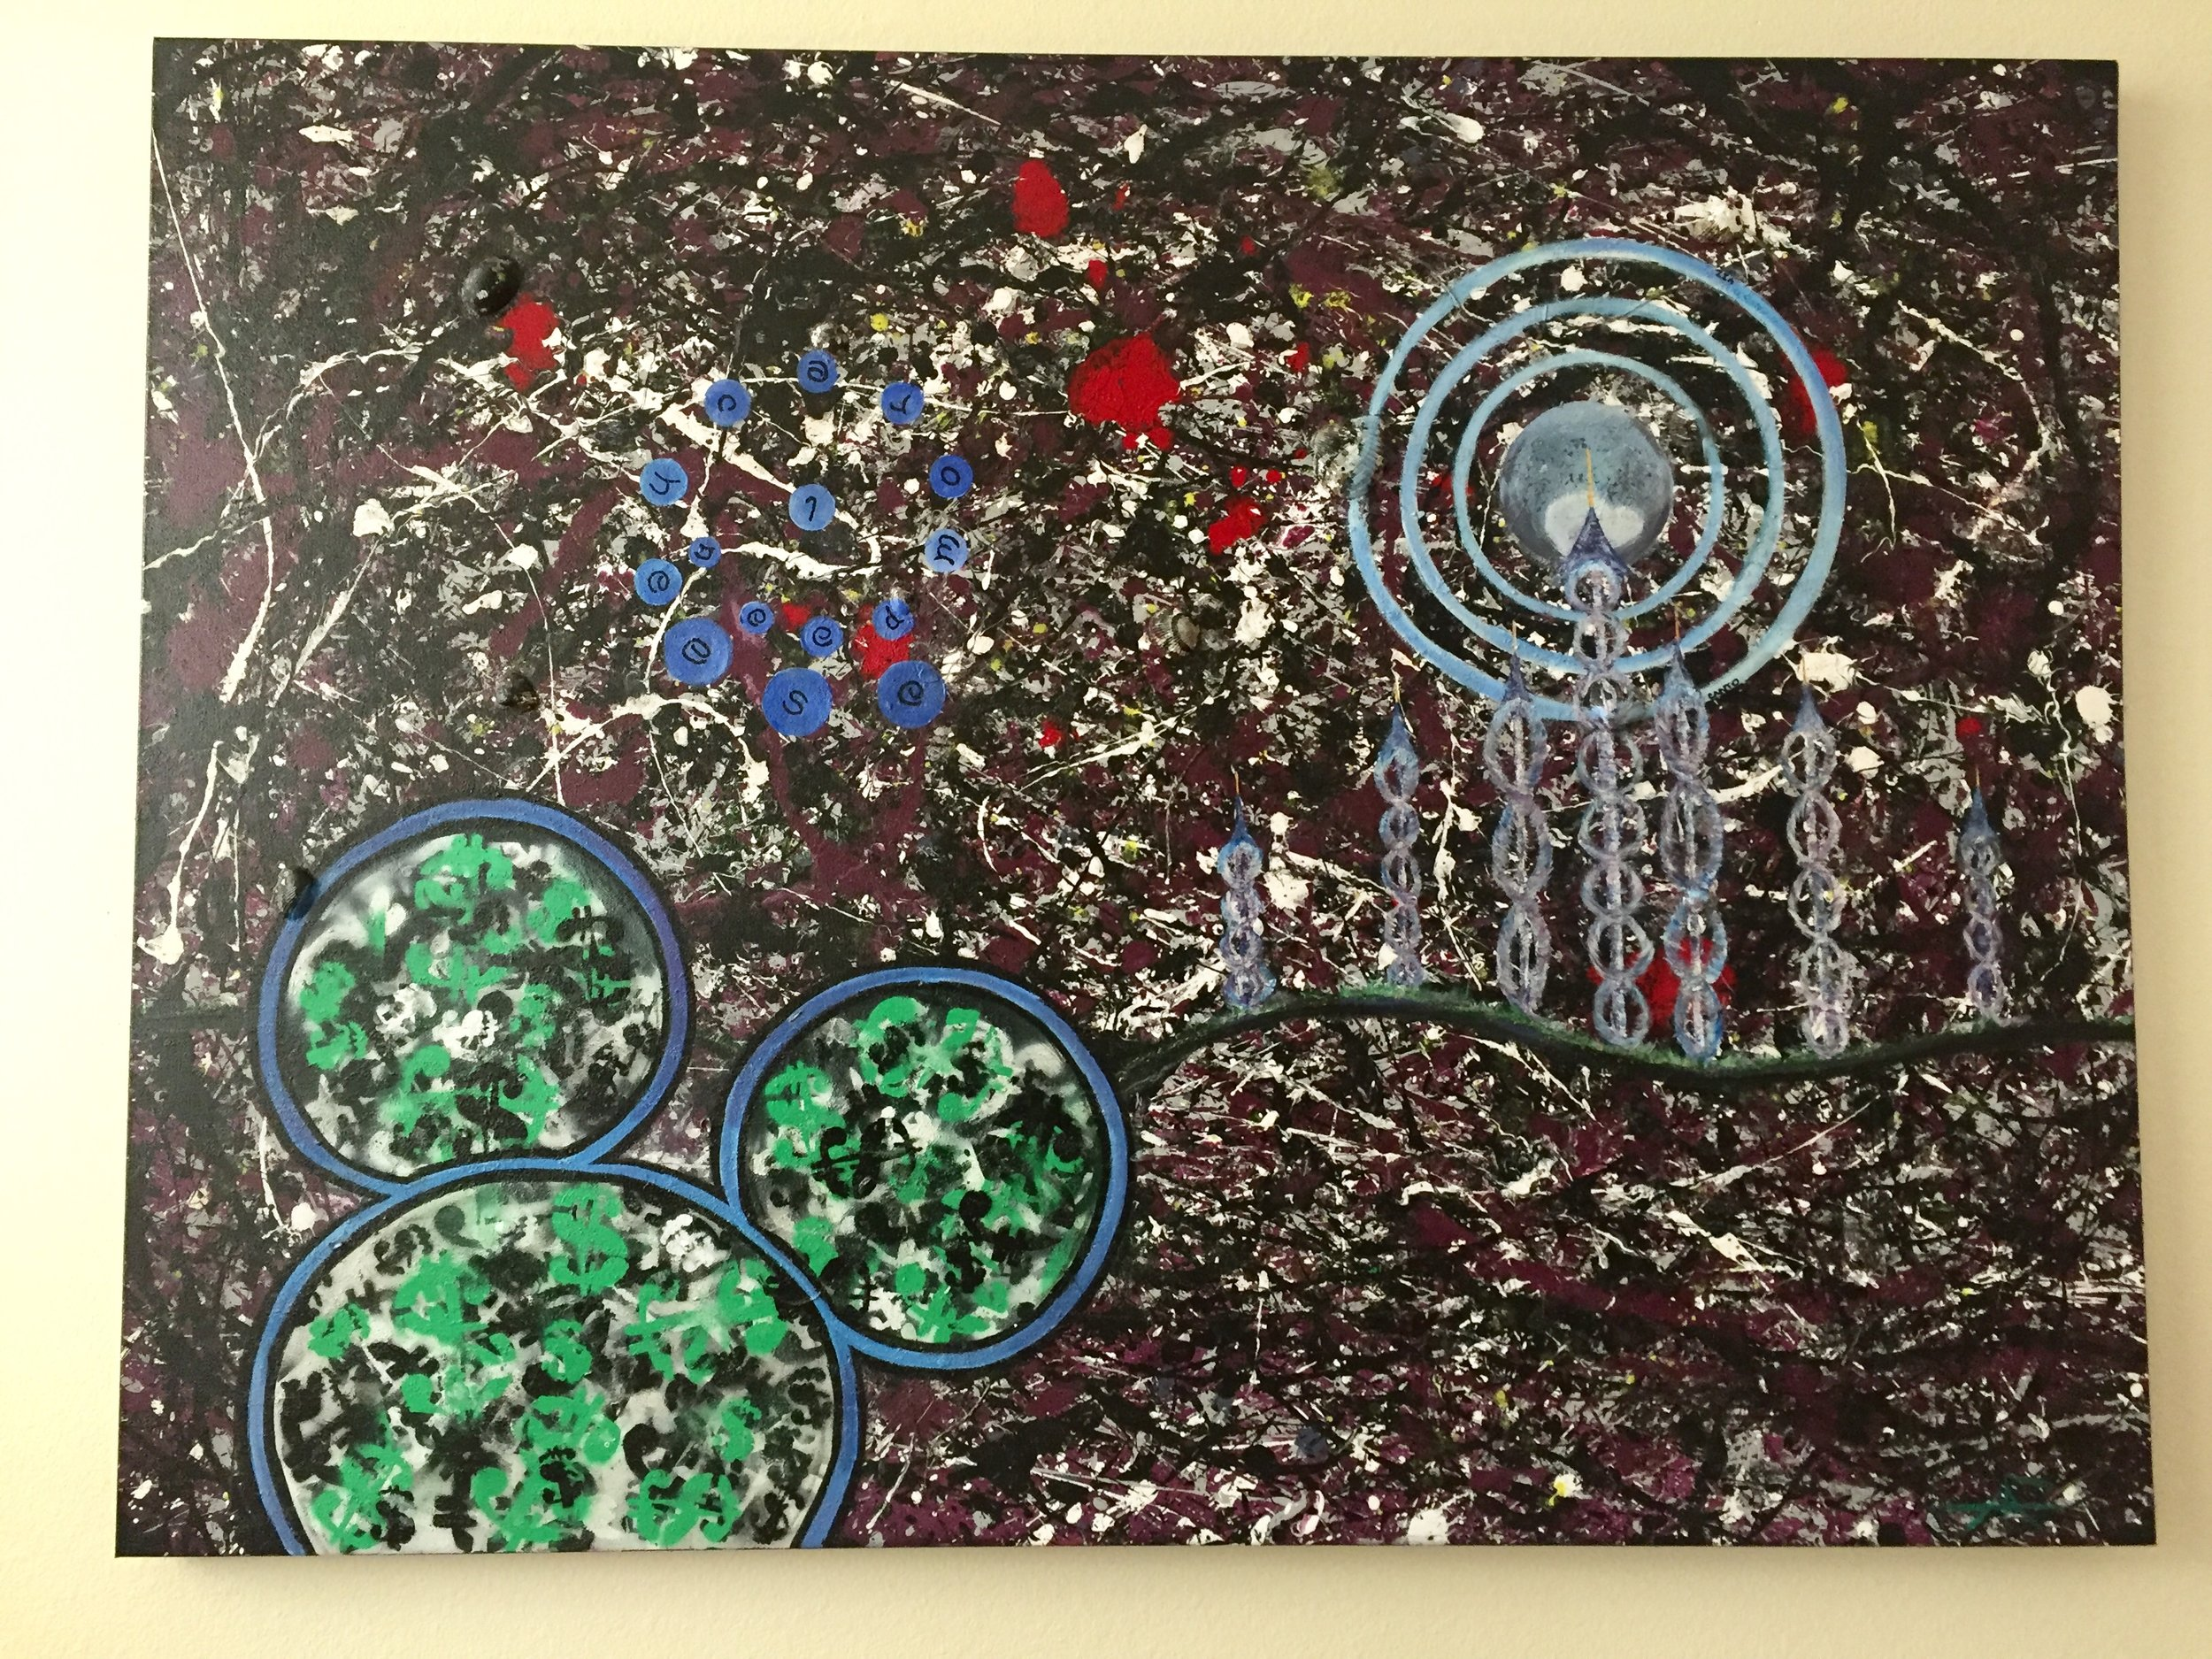 CANTO VII (MIXED MEDIA ON CANVAS) 3' X 4' -acrylic, sand, sea shells, tree twigs, spray paint, and glitter.